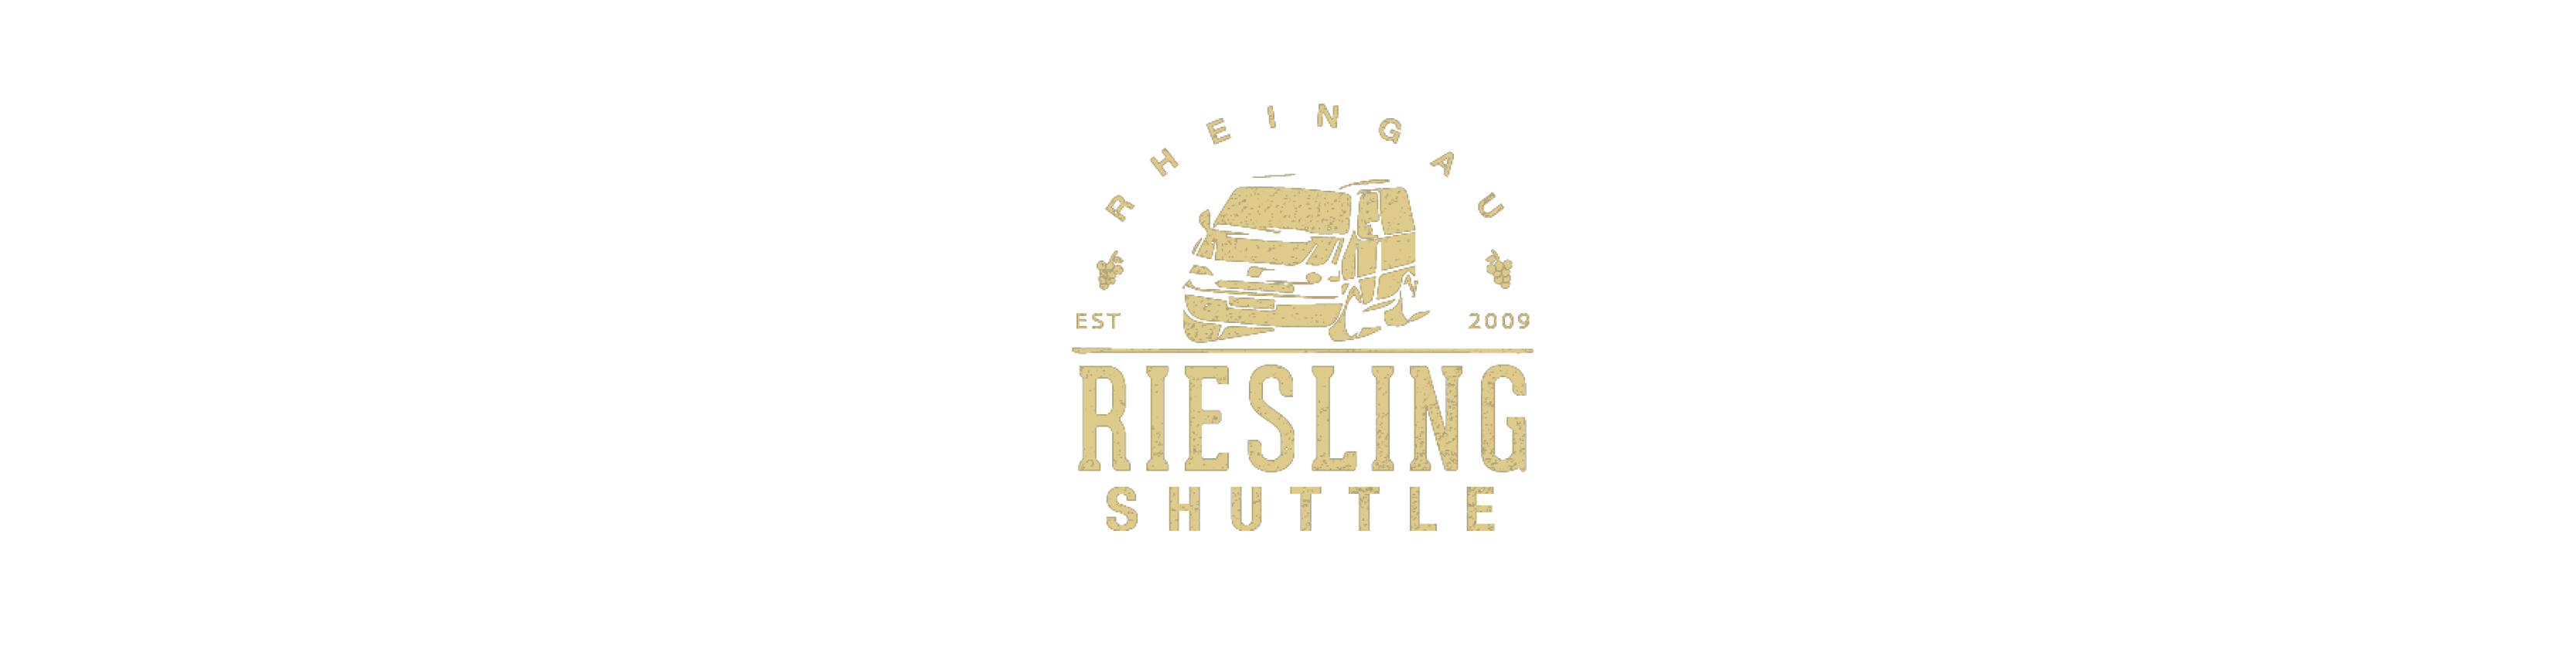 Riesling Shuttle Logo mit Events engl